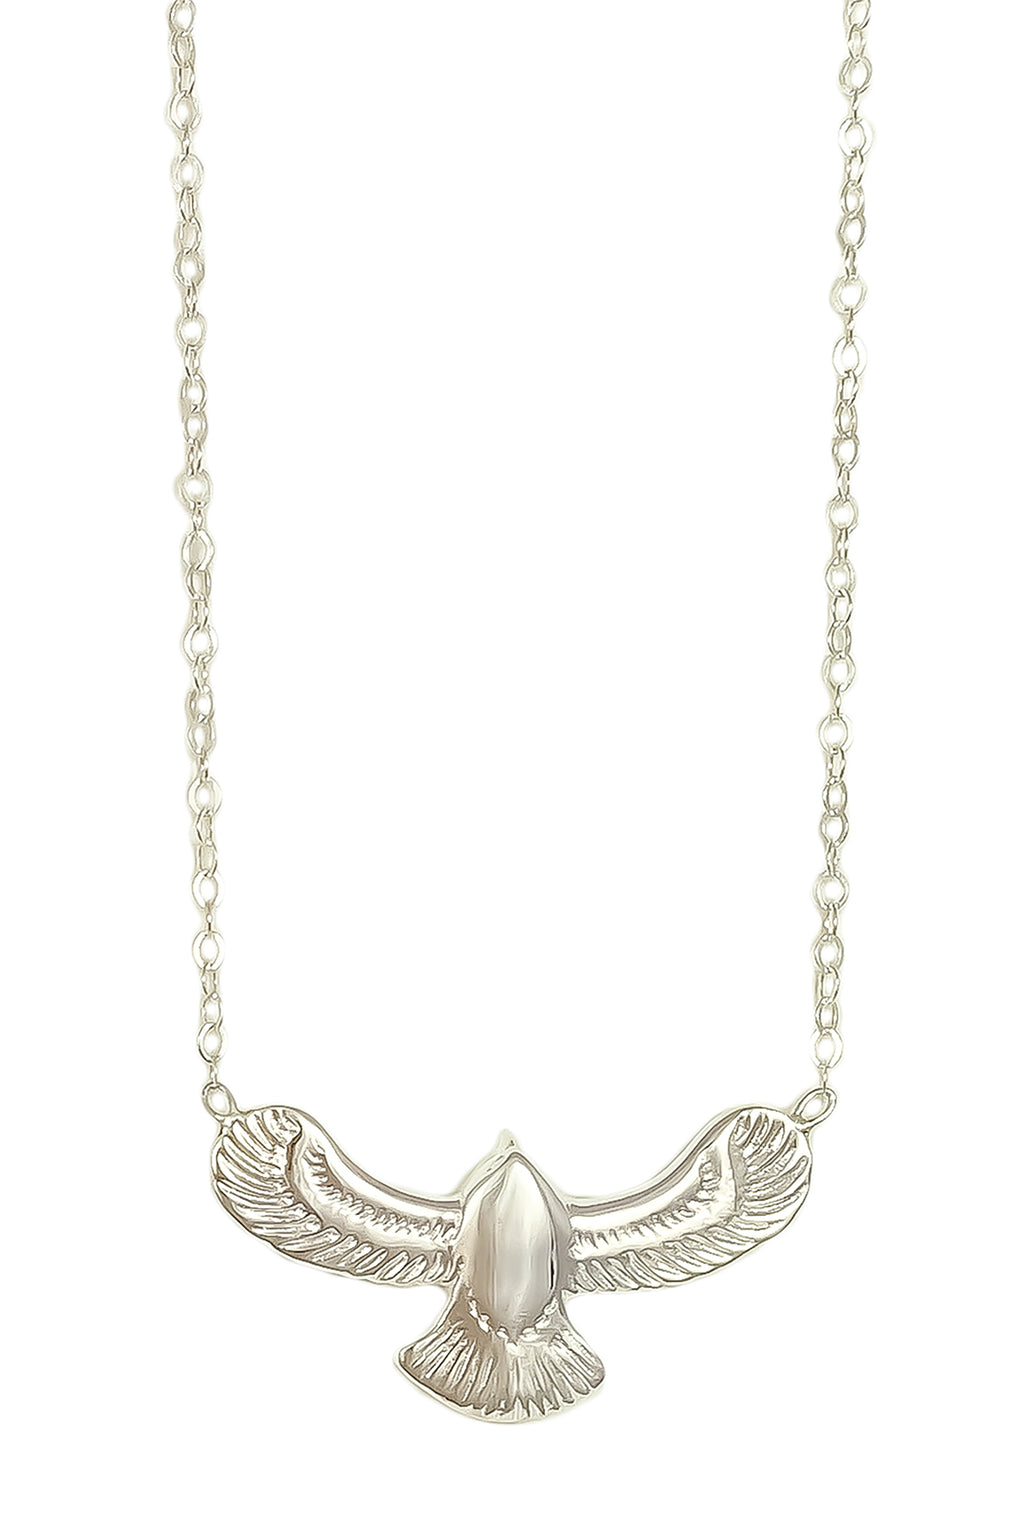 Free Spirit Eagle Necklace - Silver